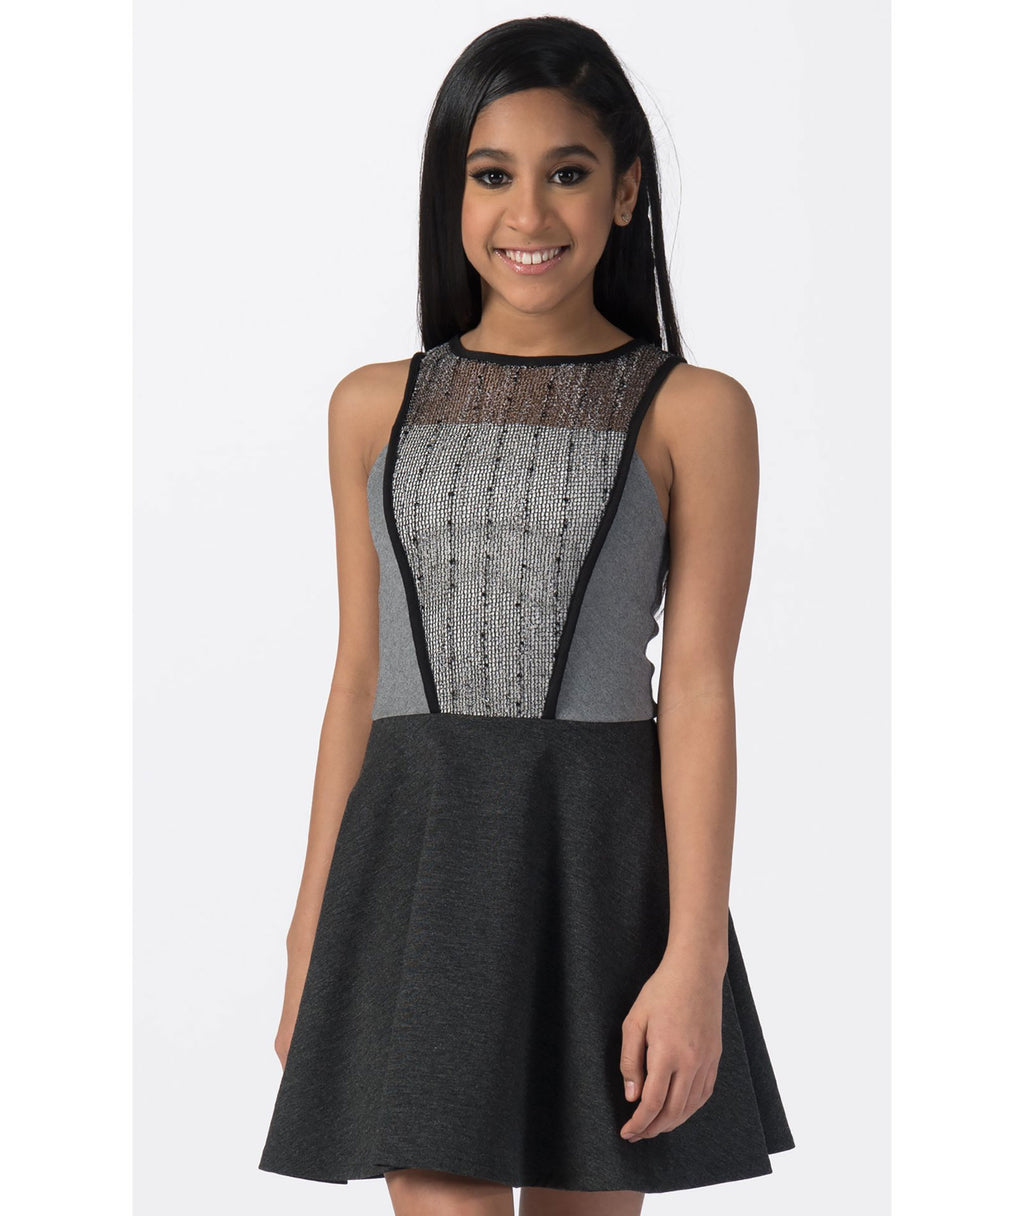 Sally Miller Girls Catee Dress